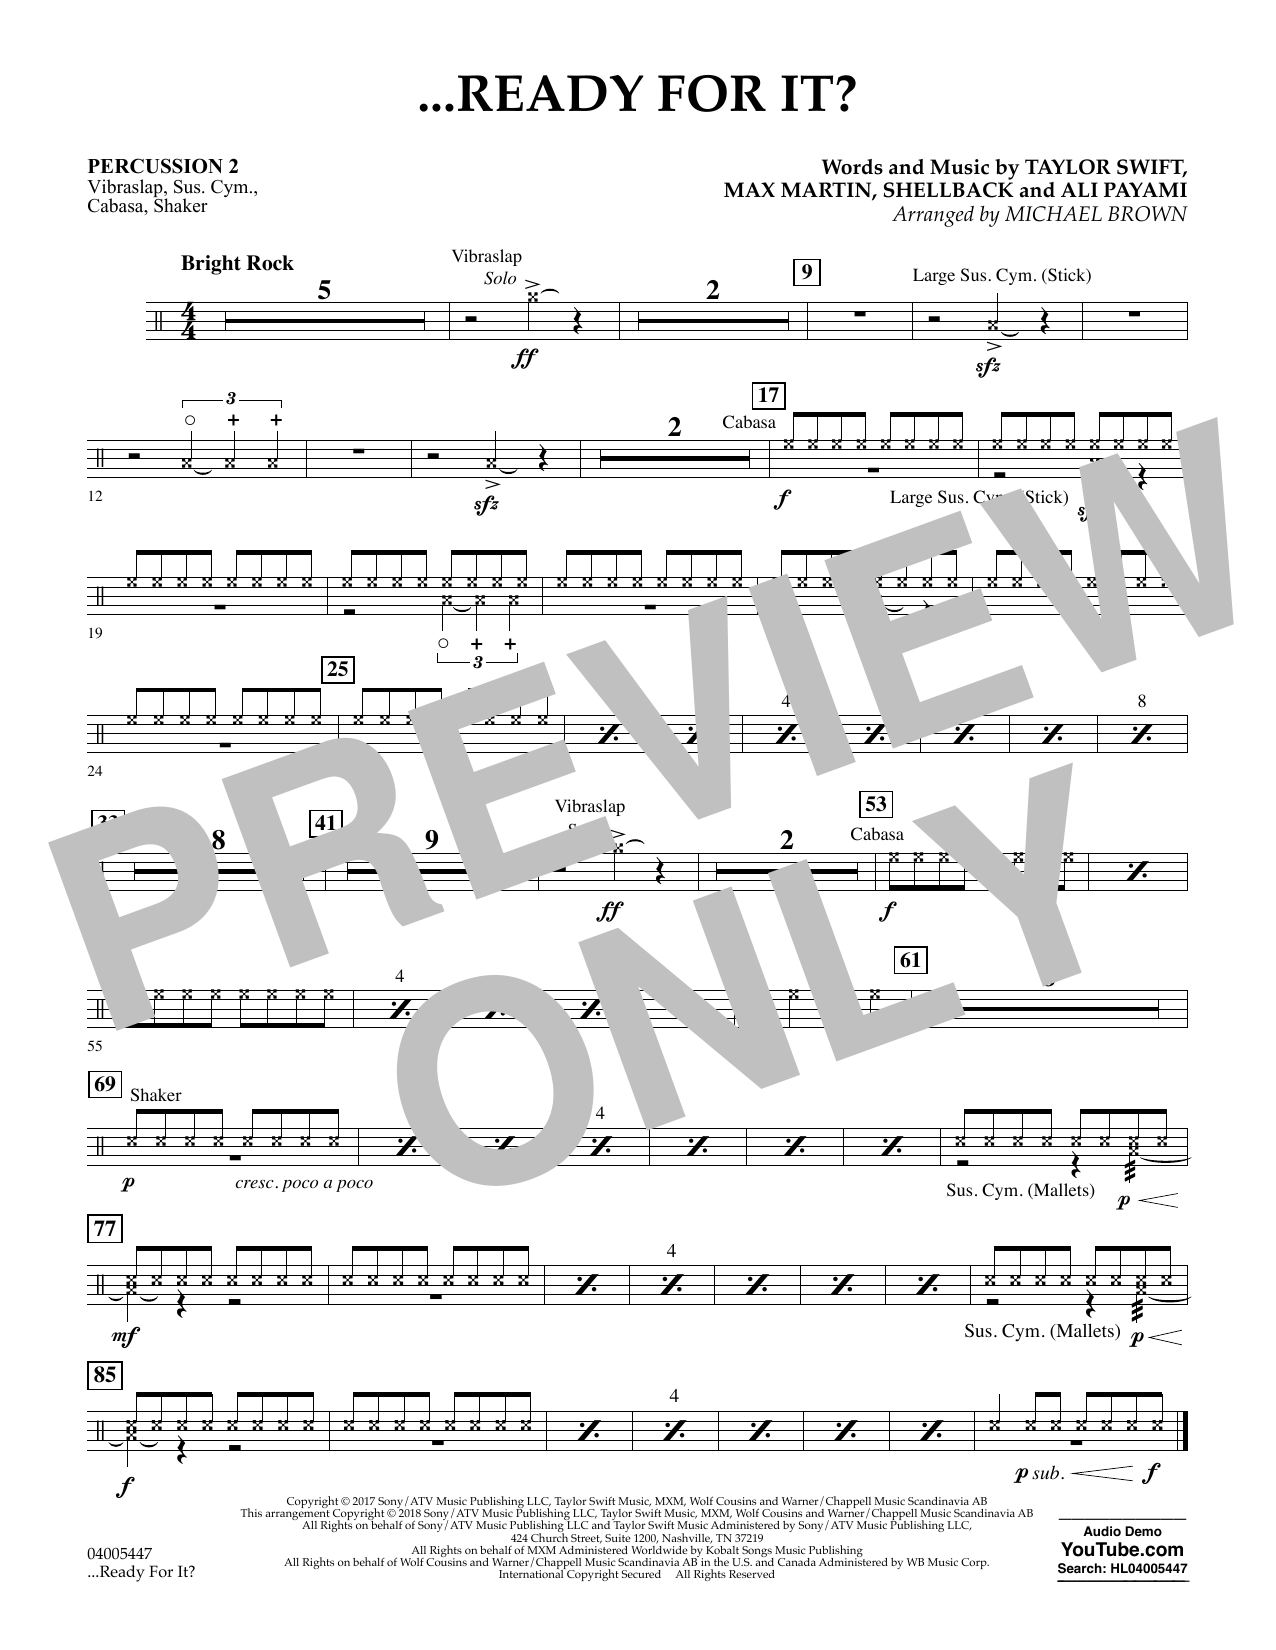 ...Ready for It? - Percussion 2 (Concert Band)